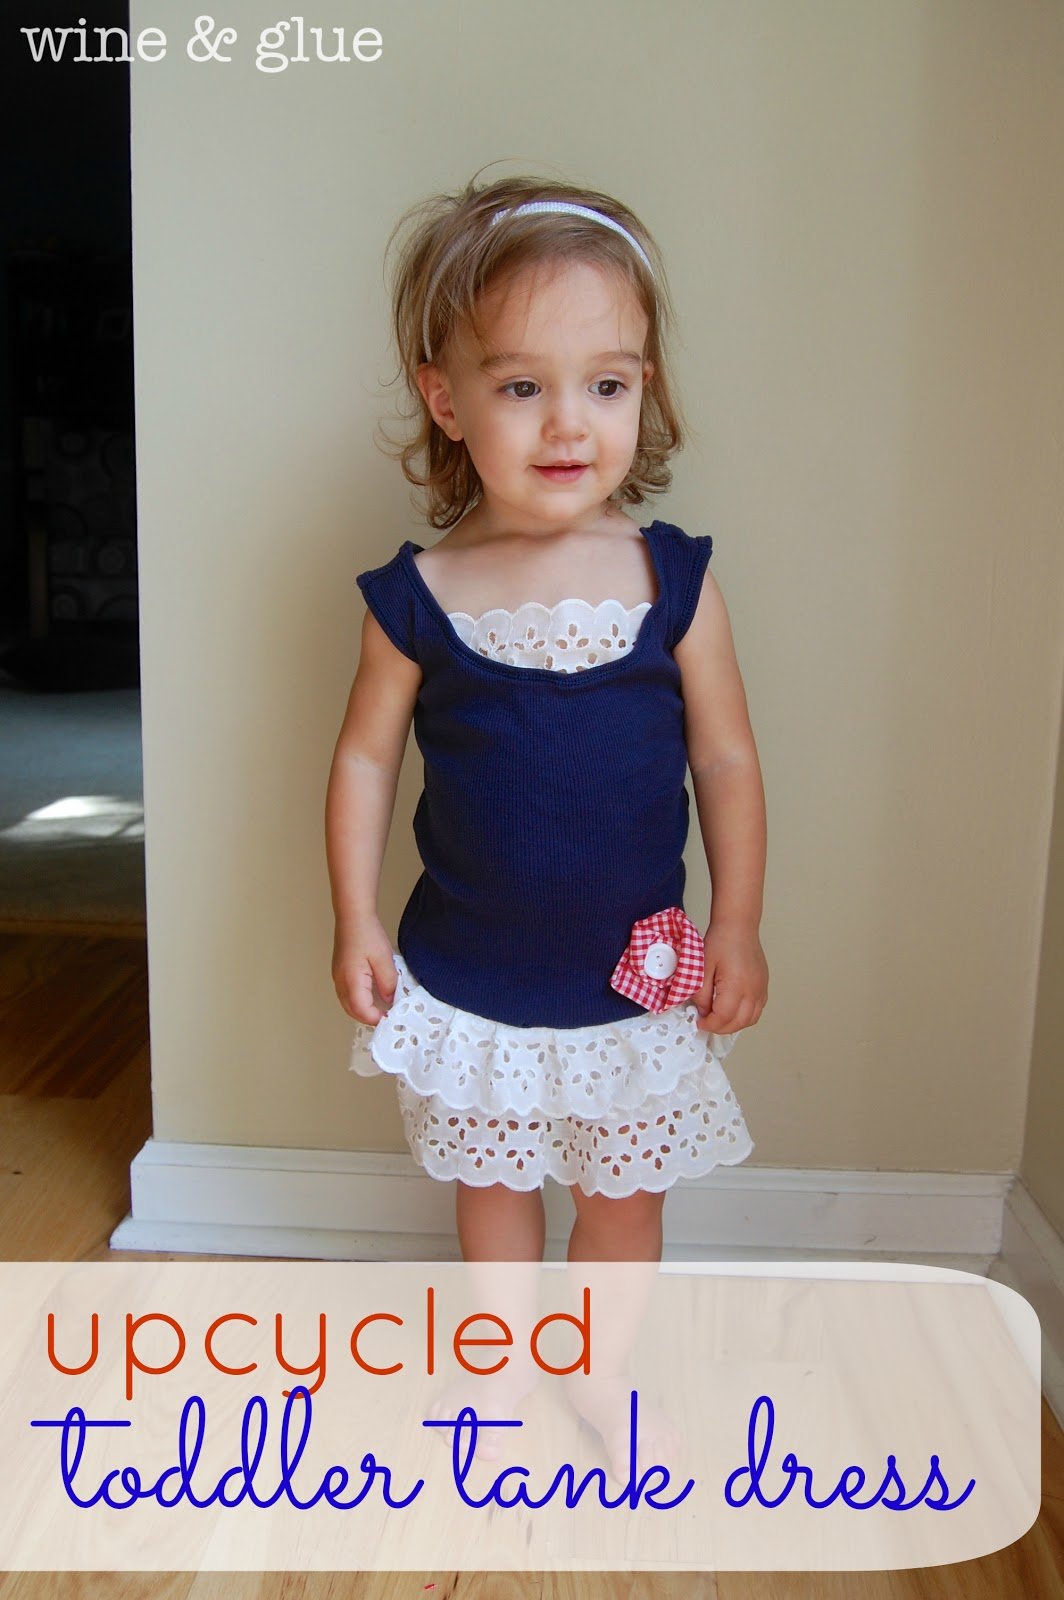 e679f0f141c Toddler Tank Dress  Upcycled  - Wine   Glue